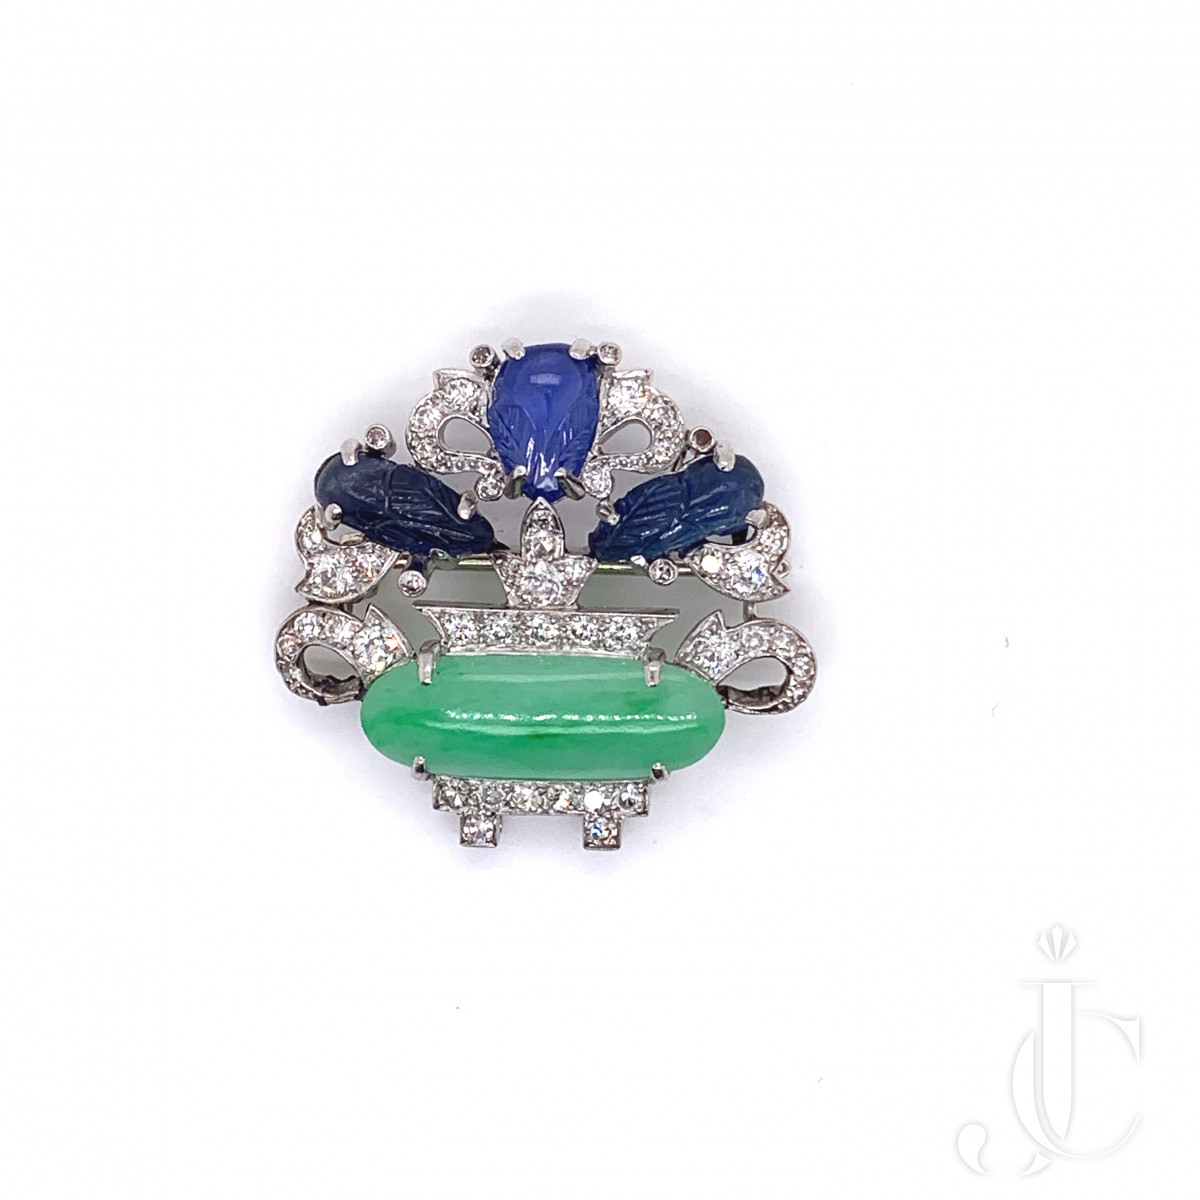 Platinum, Type A Jade, Carved Sapphire and Diamond Flower Basket Brooch by Cartier